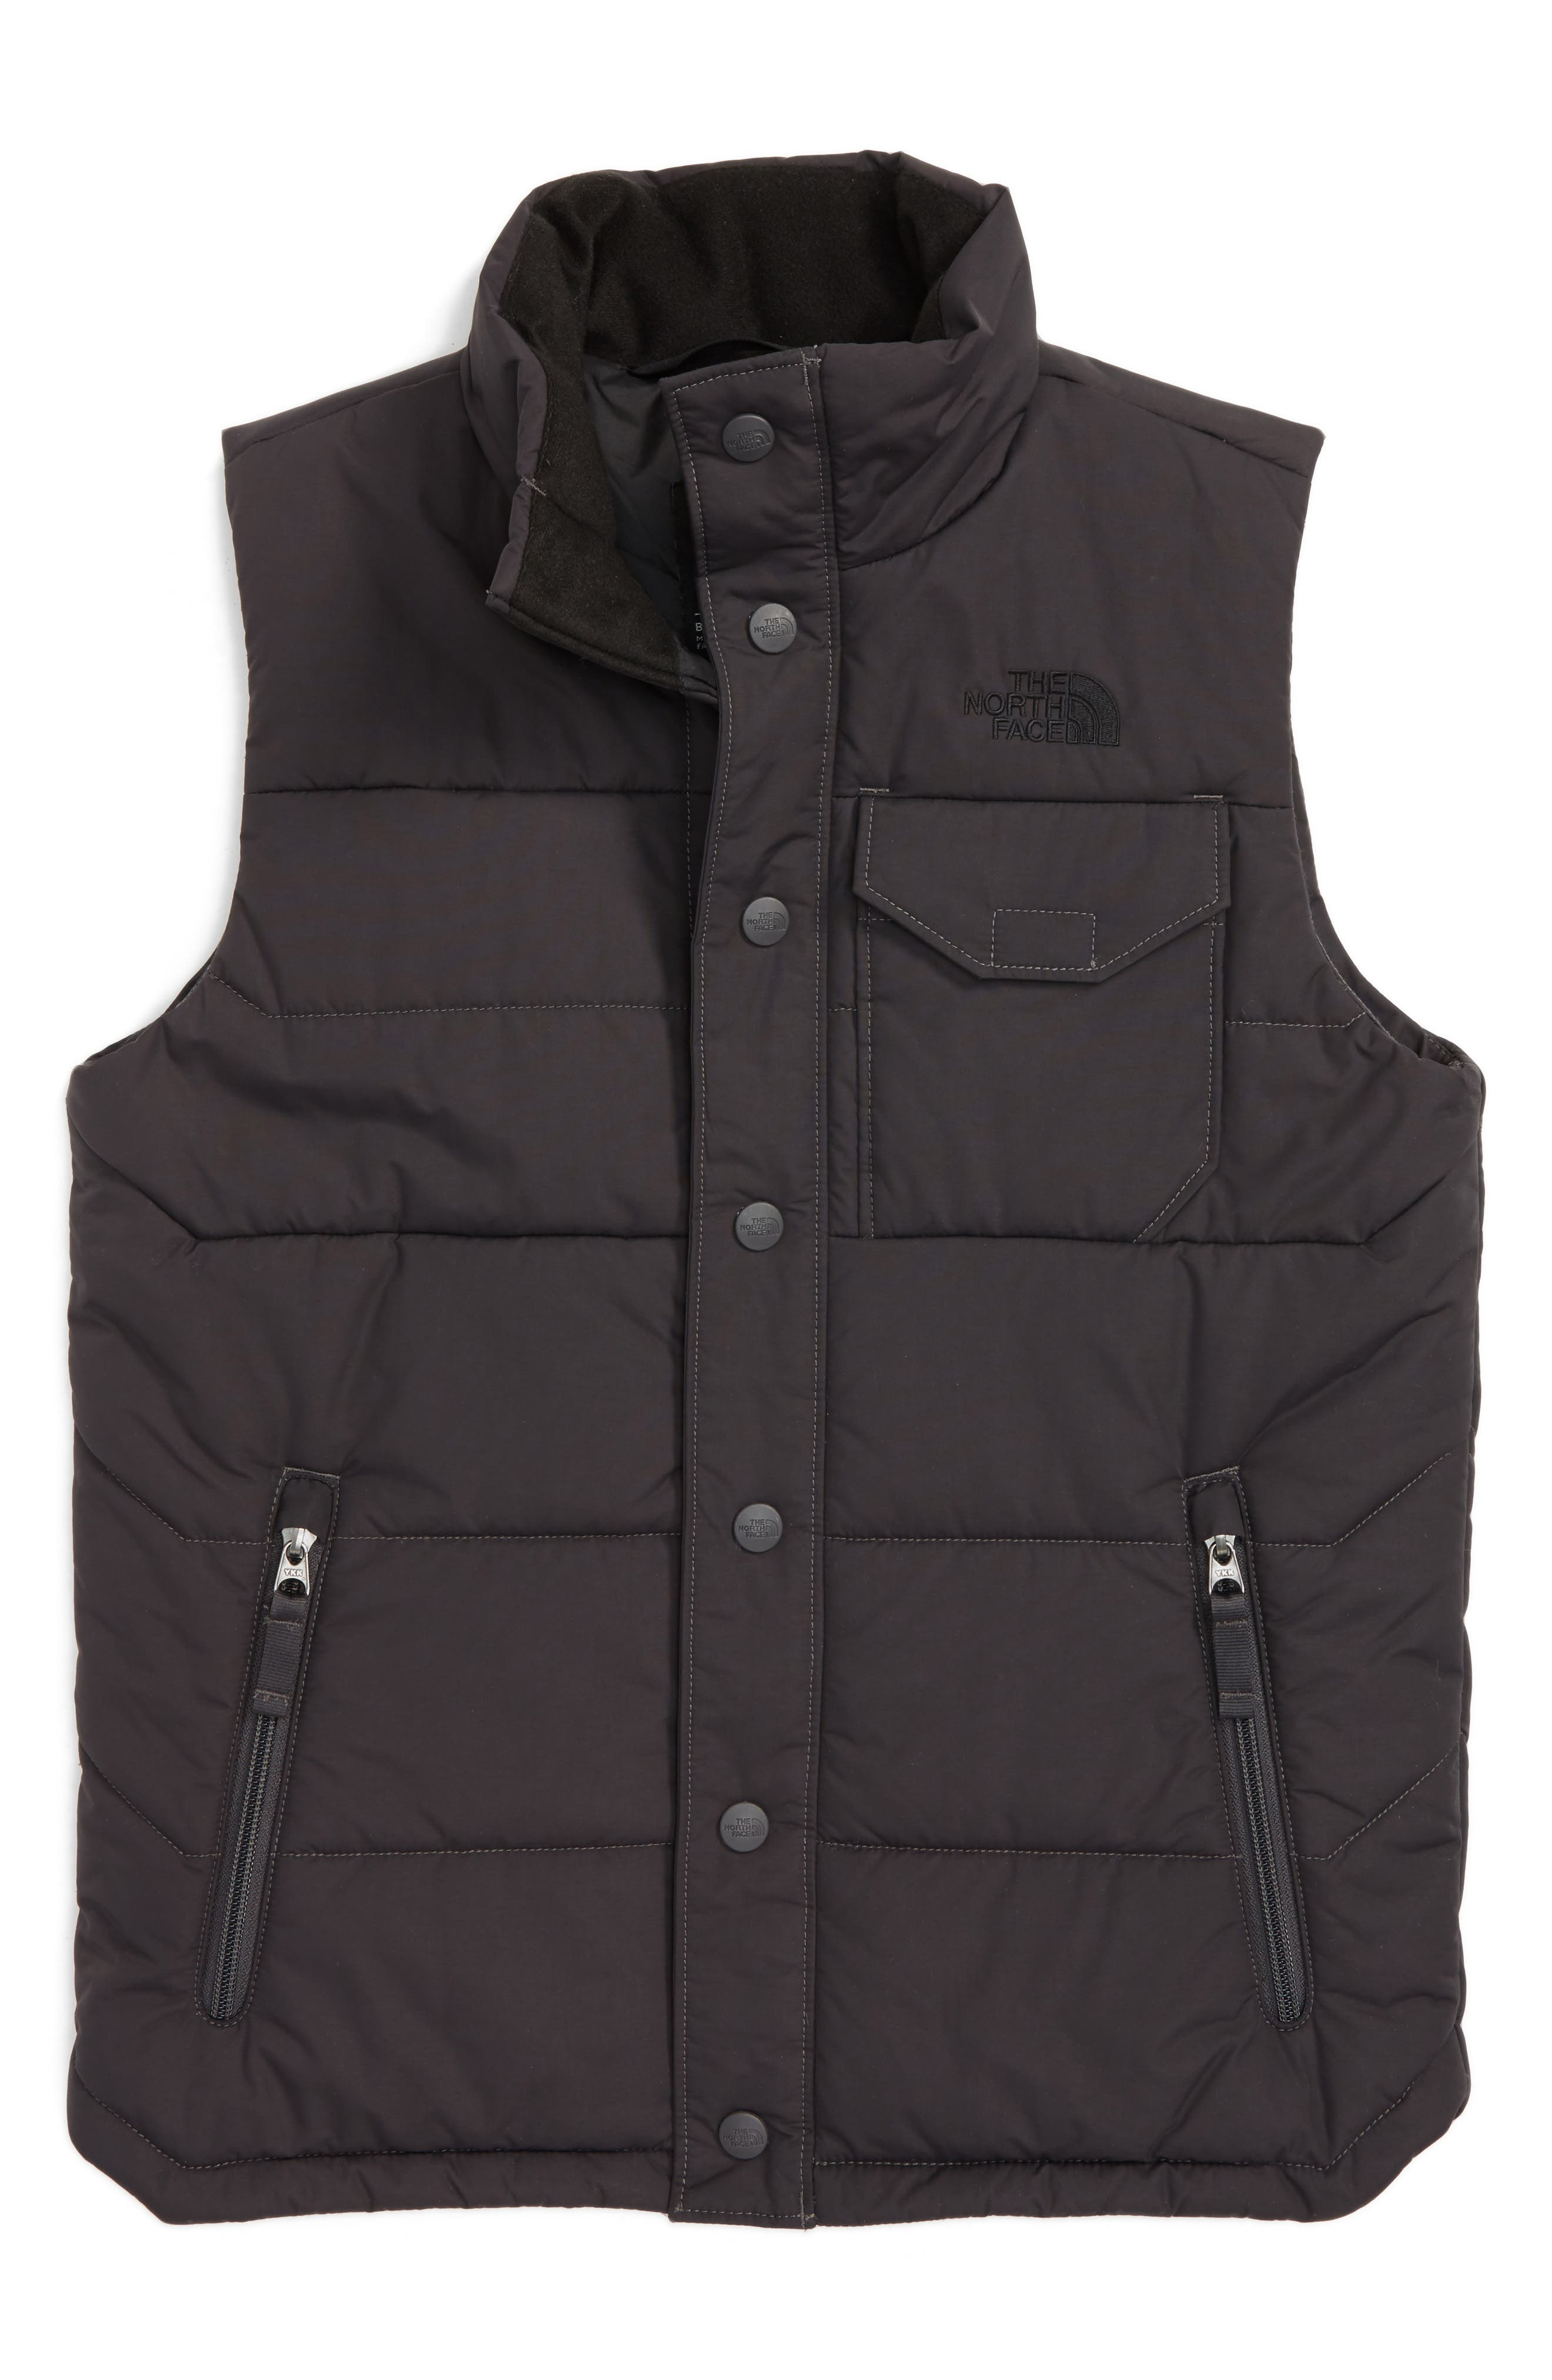 Main Image - The North Face Patrick's Point Quilted Down Vest (Toddler Boys, Little Boys & Big Boys)